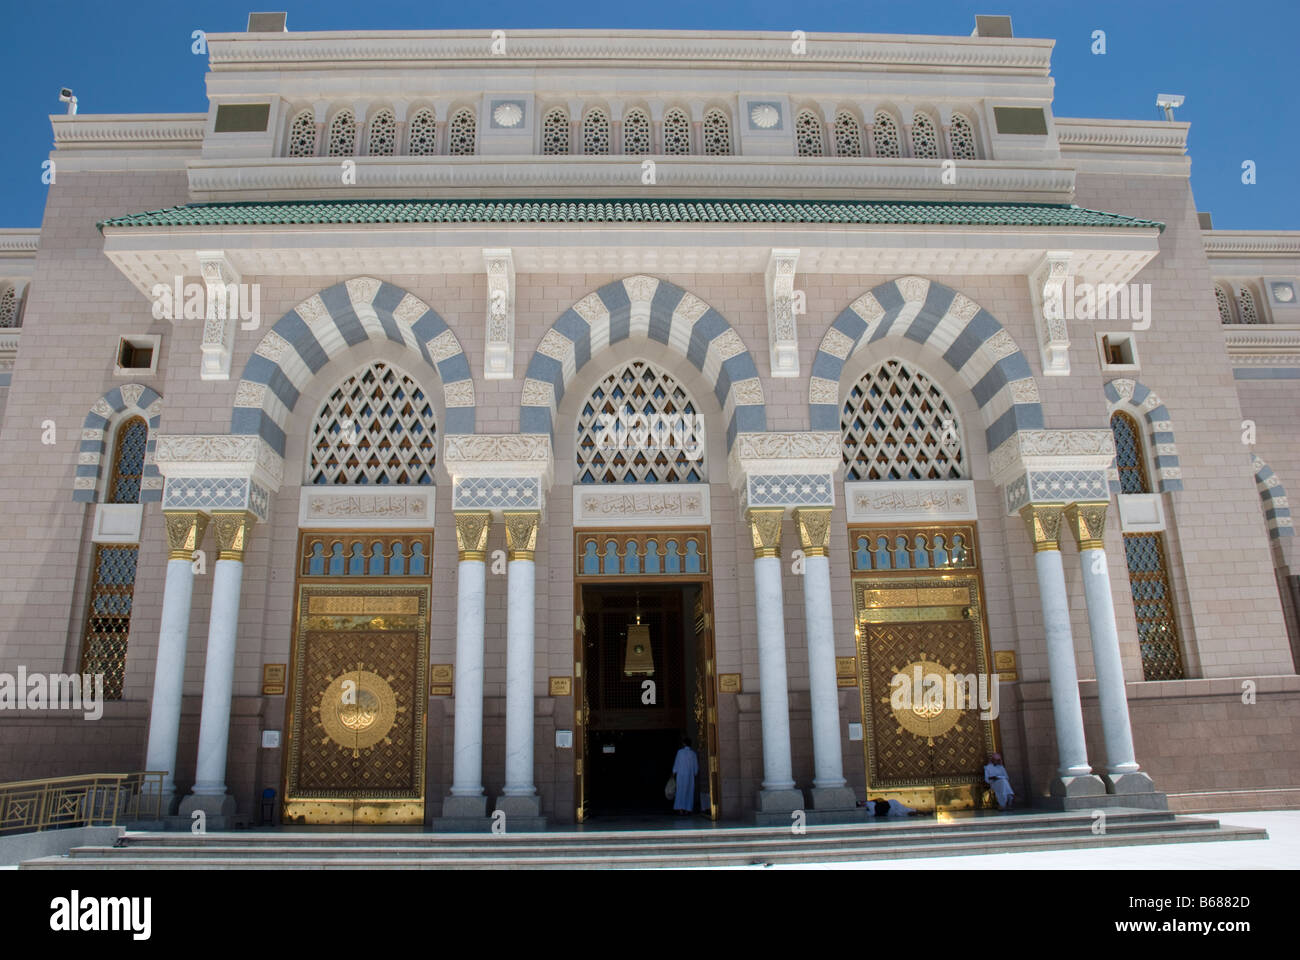 Doors at the Quba gate The Mosque of the Prophet Masjid al Nabawi Madinah Saudi Arabia & Doors at the Quba gate The Mosque of the Prophet Masjid al Nabawi ...